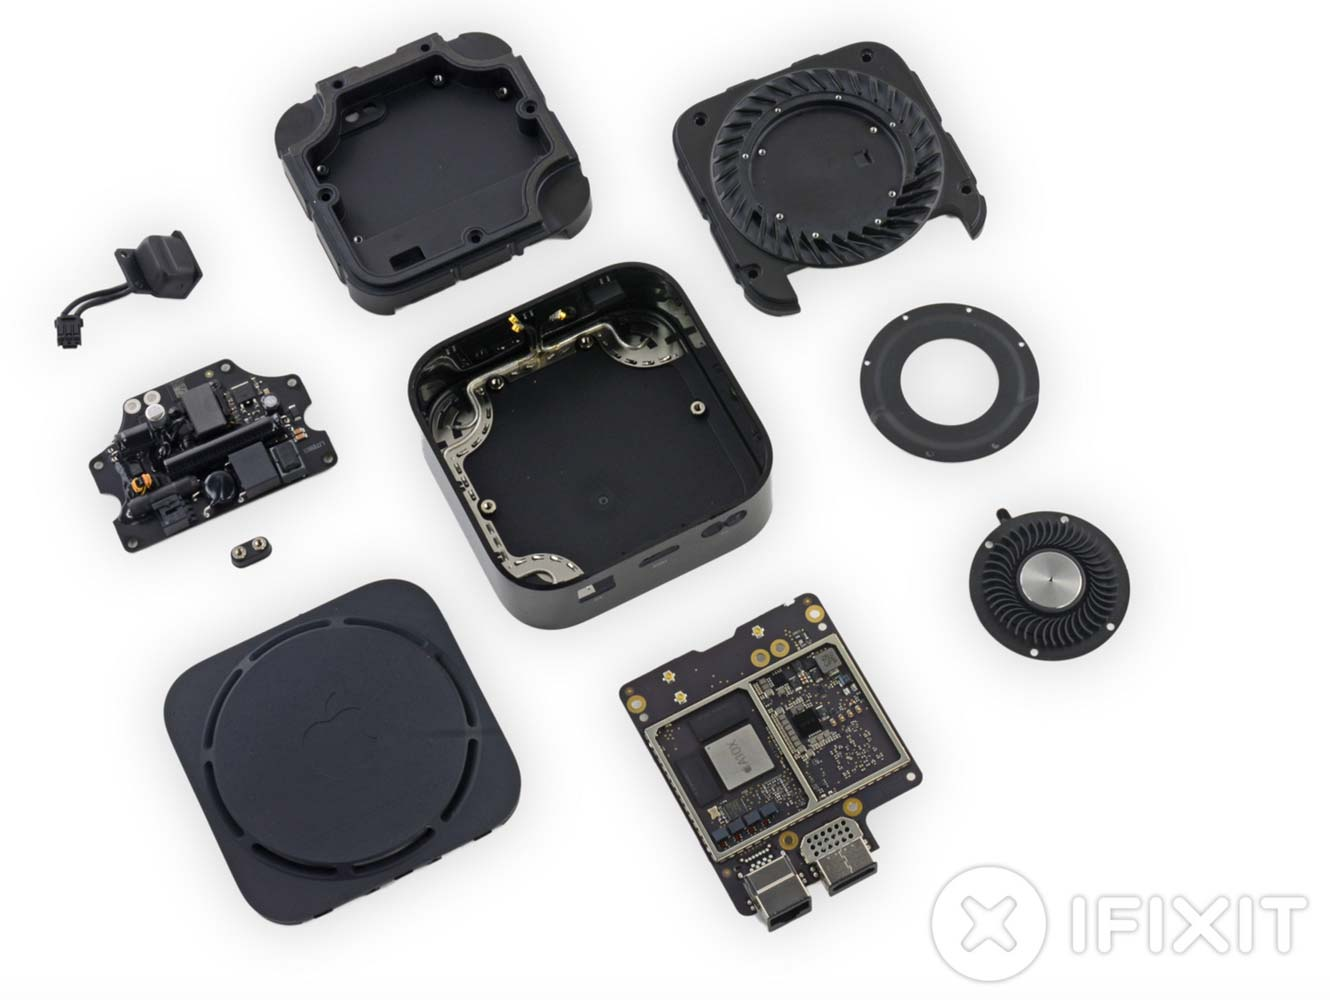 Ifixitappletv4k 01